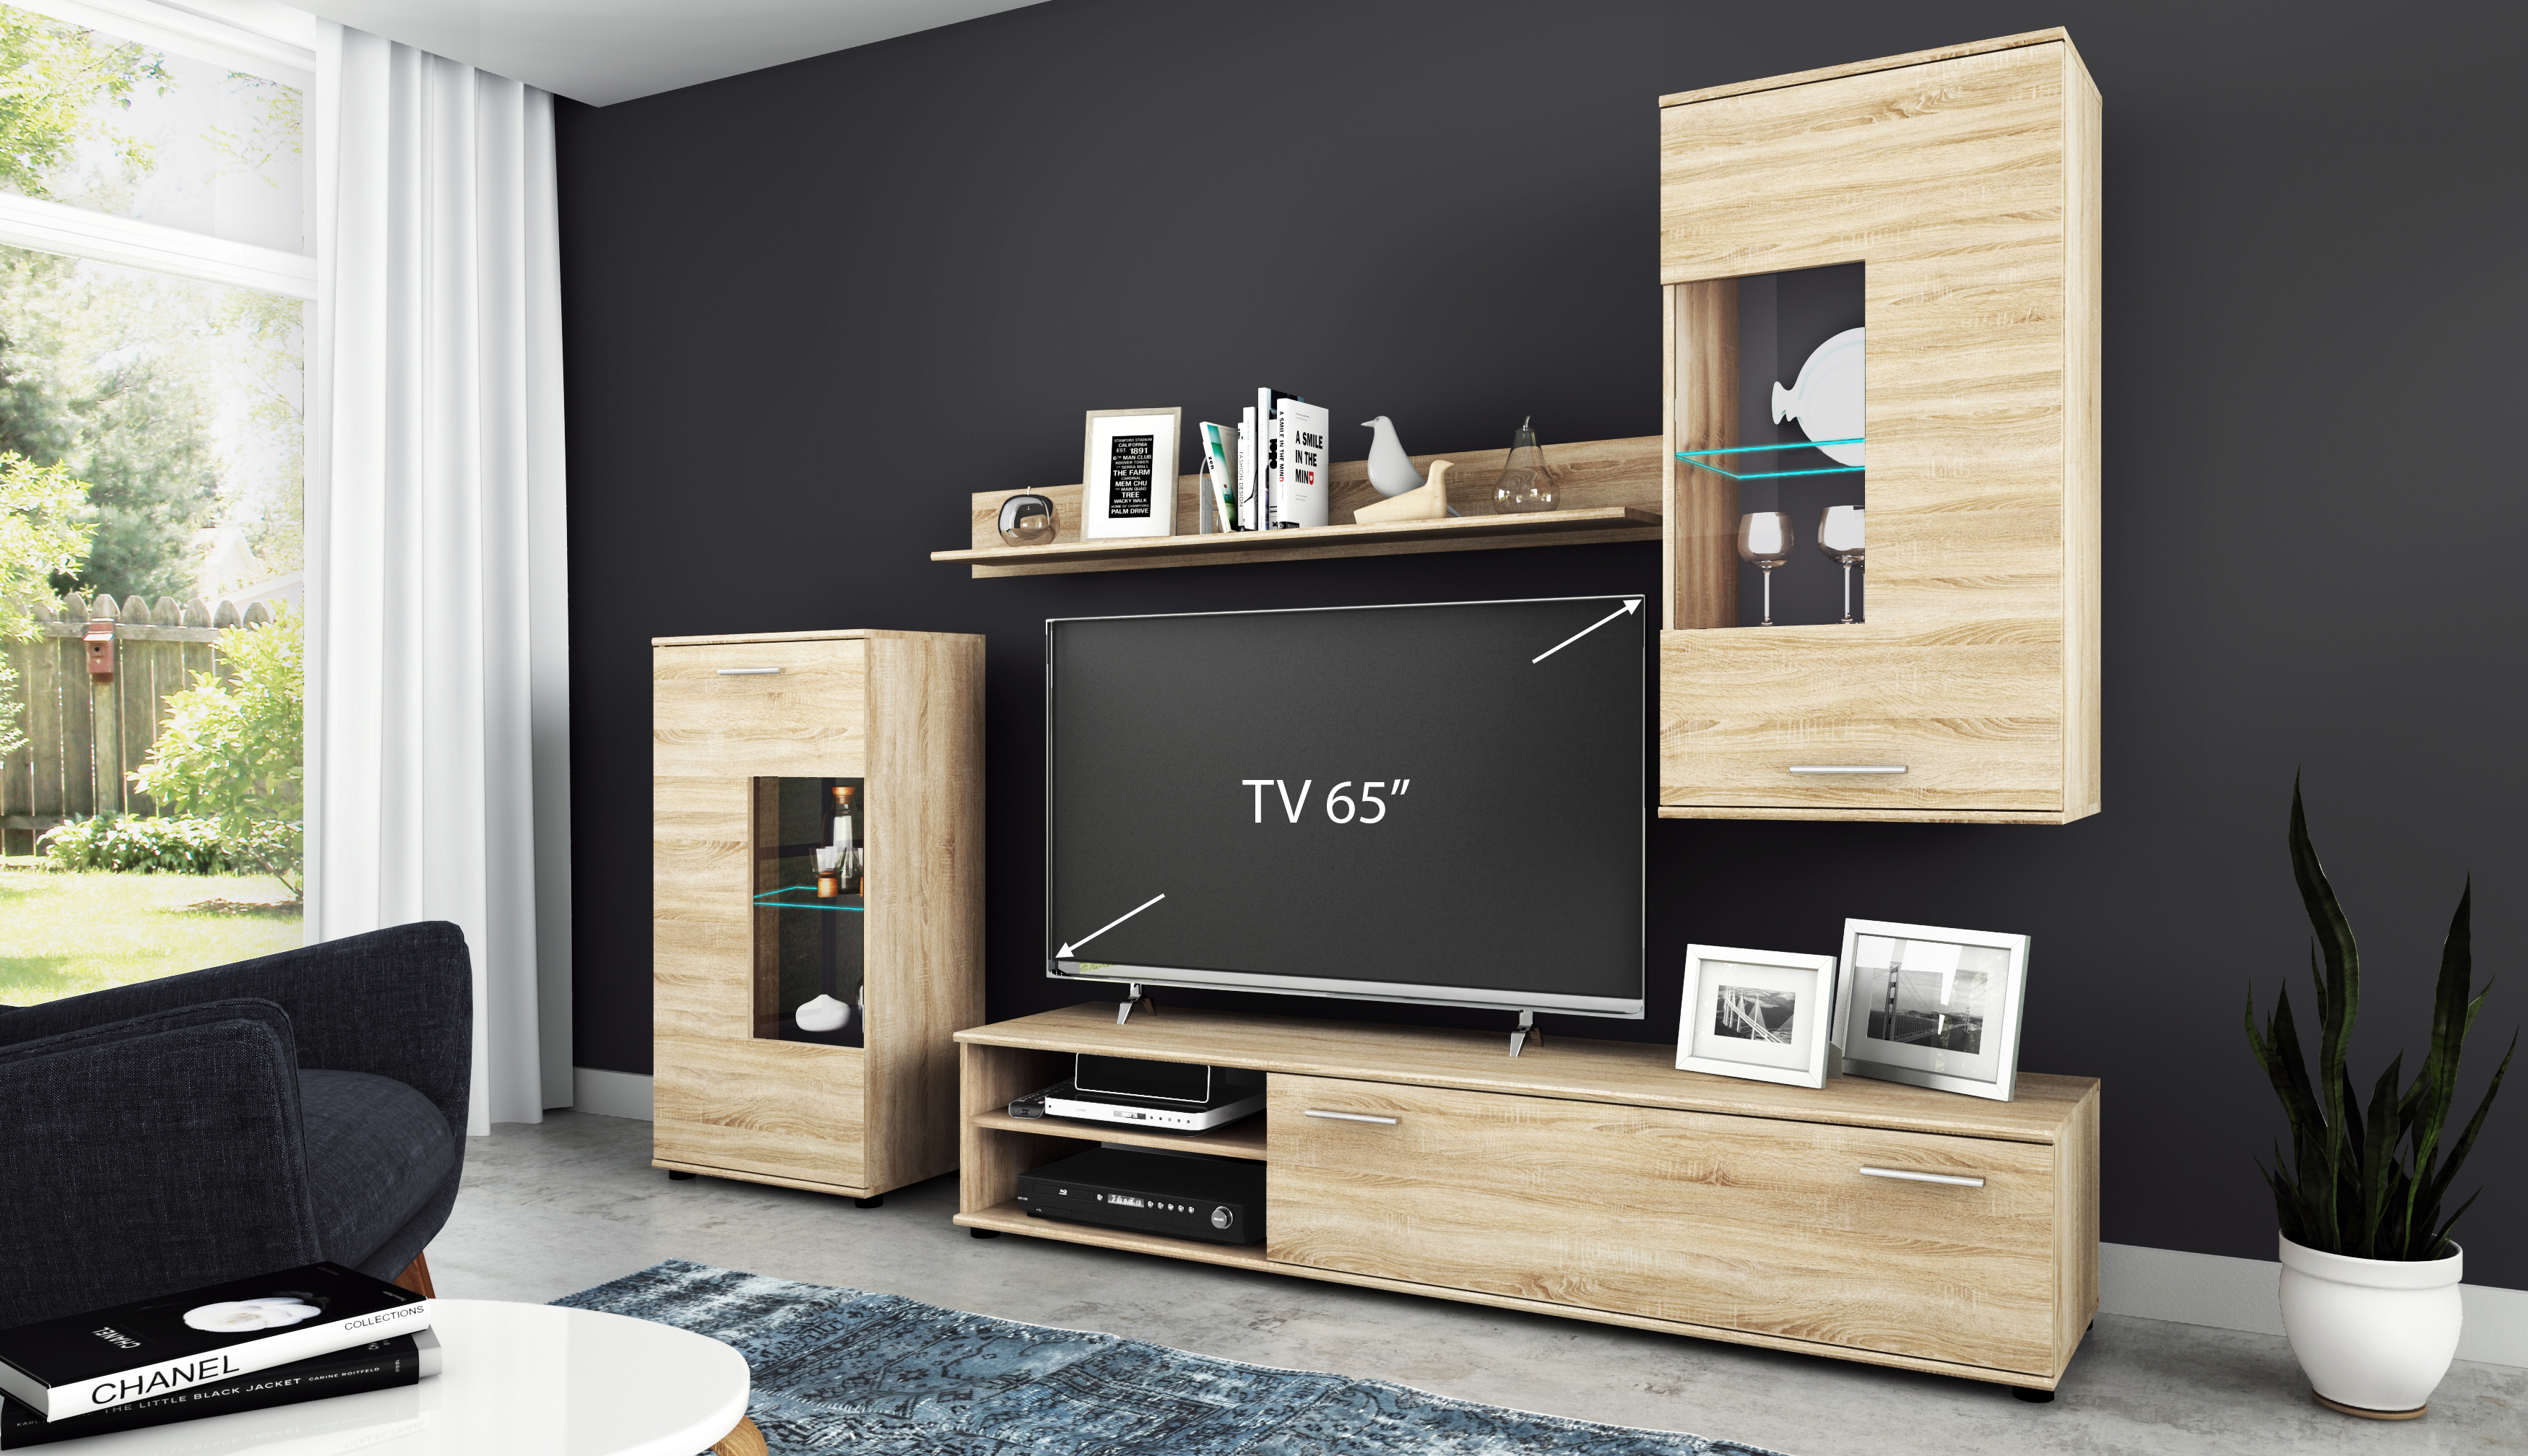 wohnwand anbauwand tv wand wohnzimmer m bel set cool 4. Black Bedroom Furniture Sets. Home Design Ideas